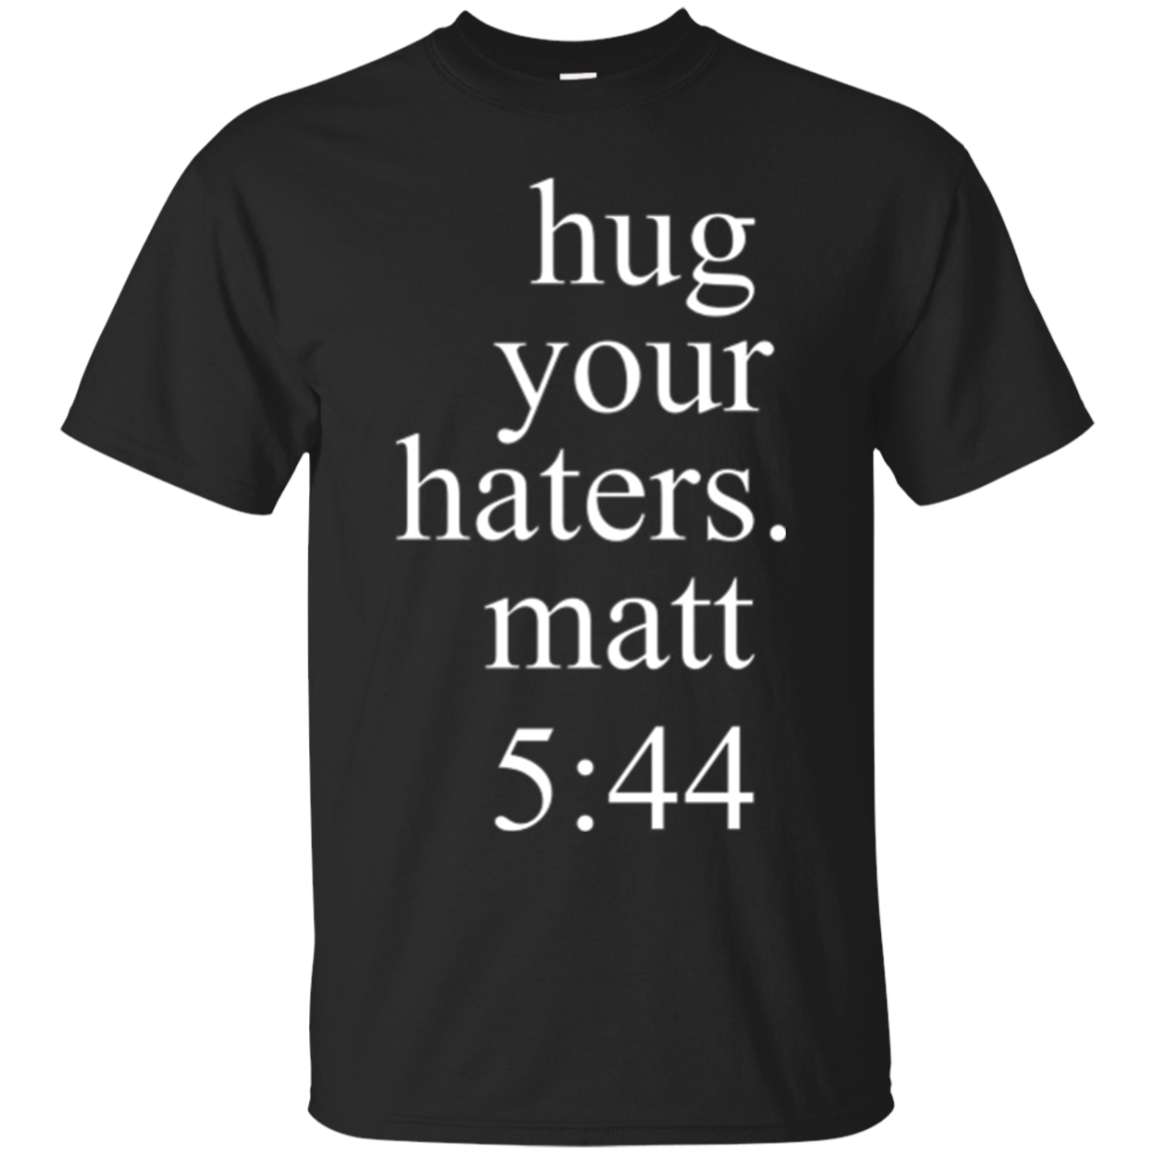 Hug your haters matt 5:44 shirt funny